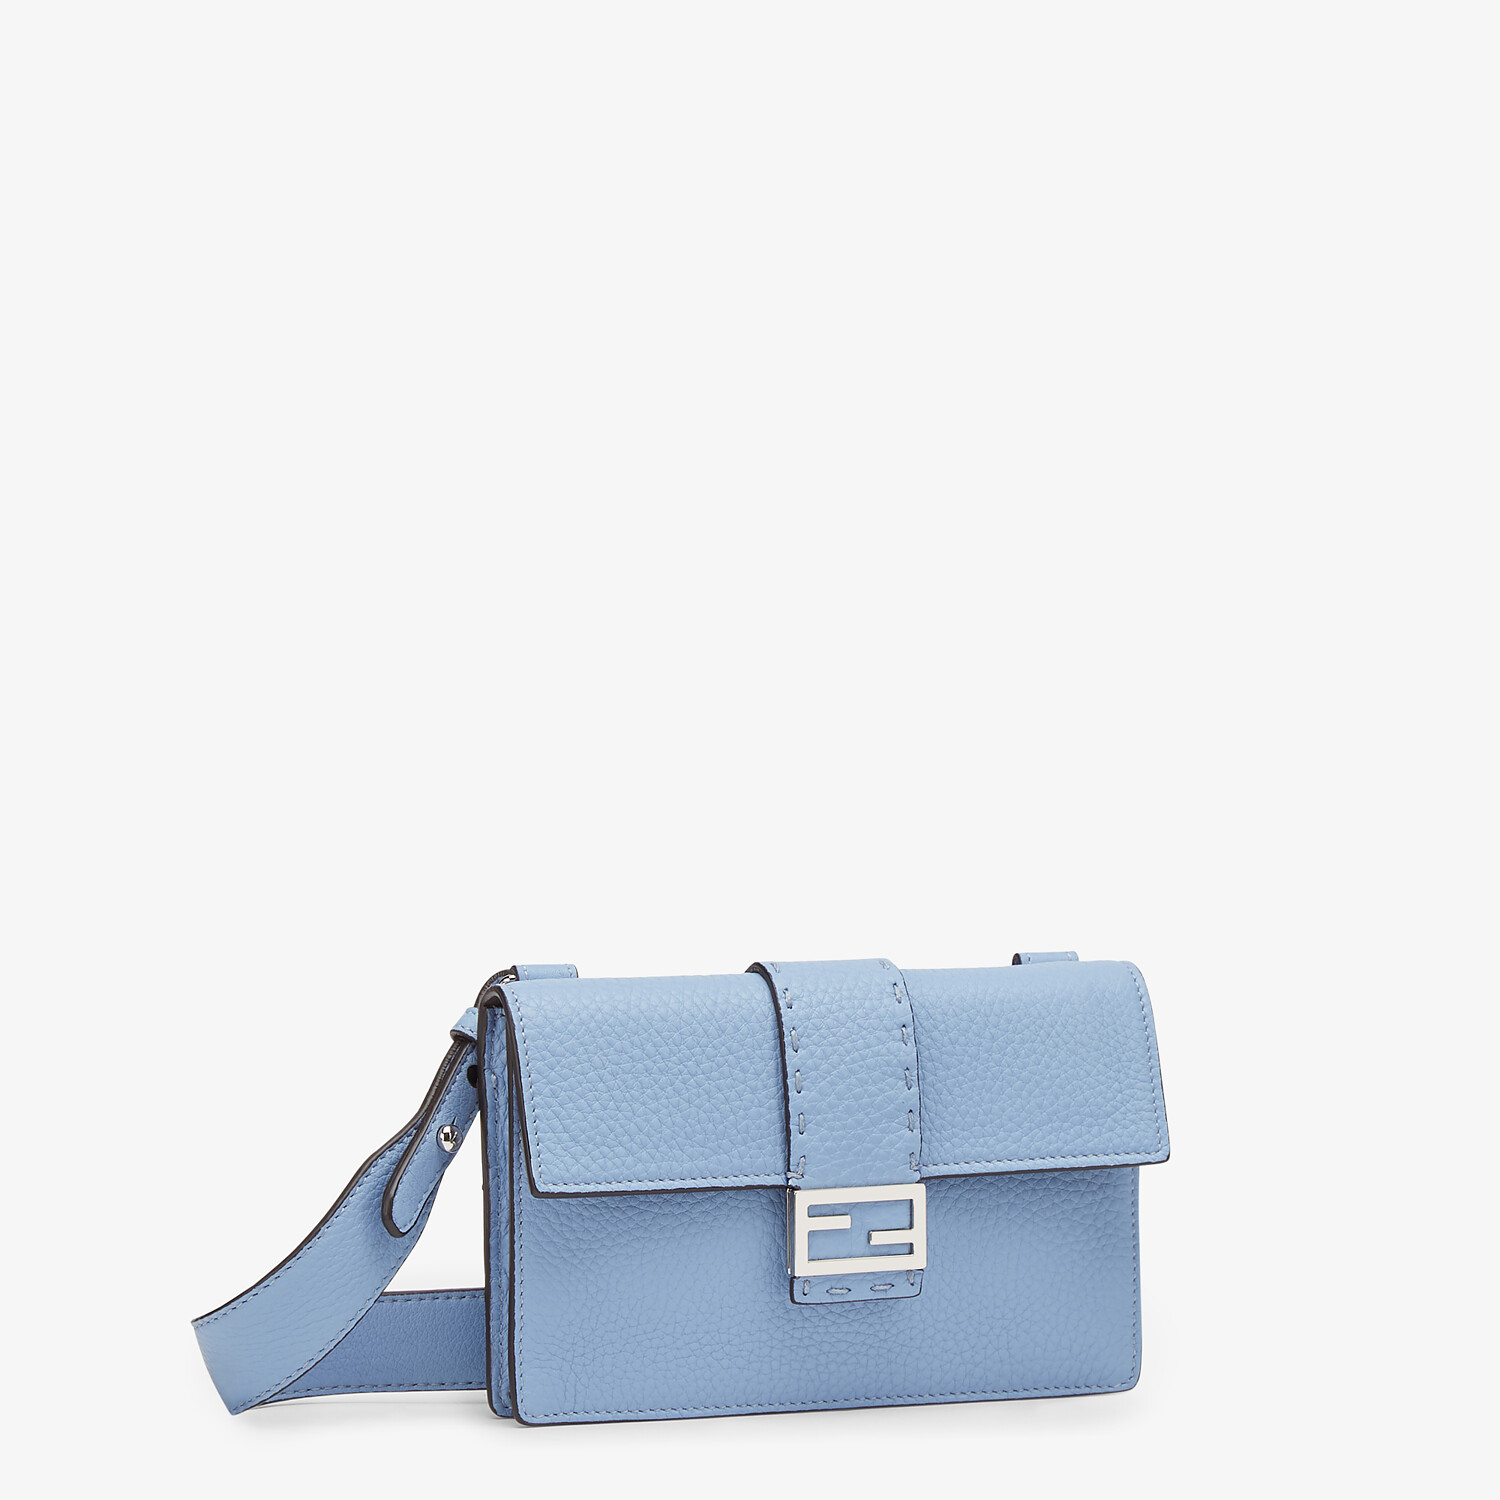 FENDI BAGUETTE POUCH - Light blue leather bag - view 2 detail